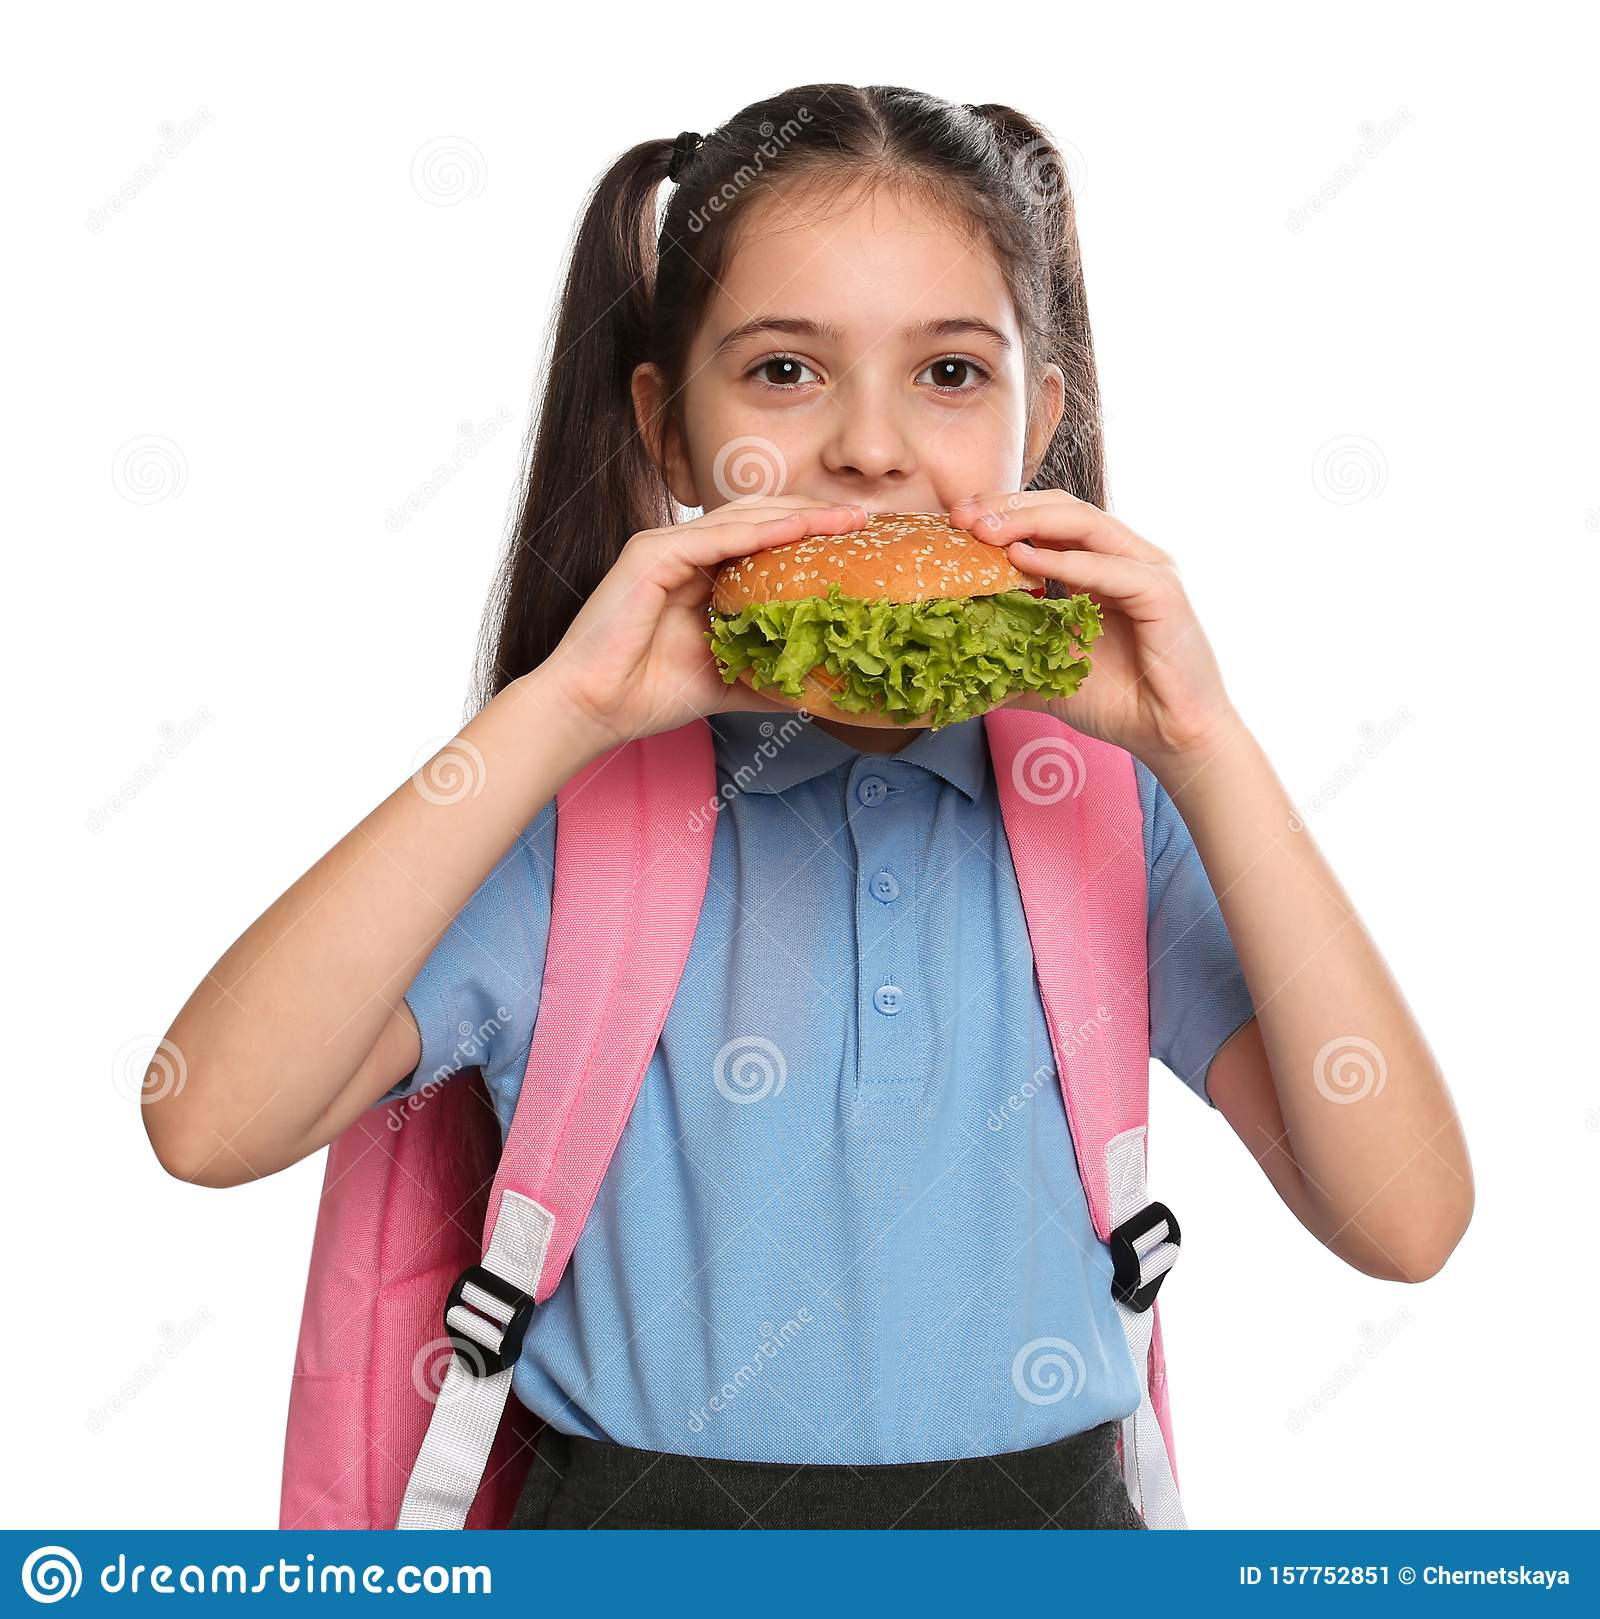 Little girl eating burger on white background. food for school lunch